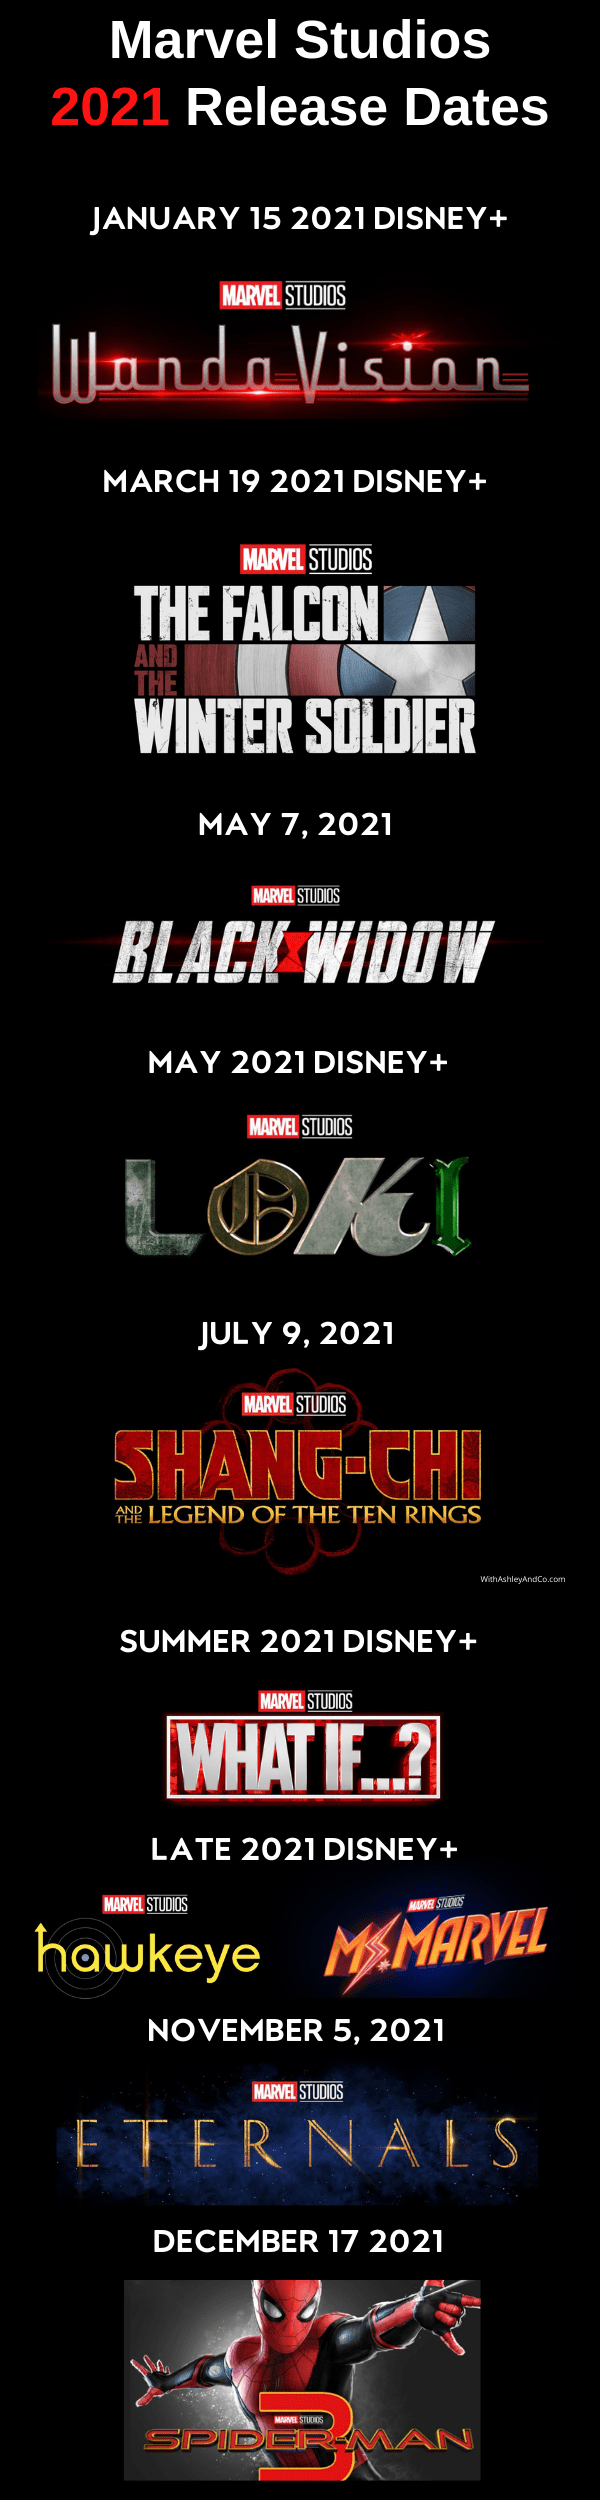 Marvel 2021 Release Dates